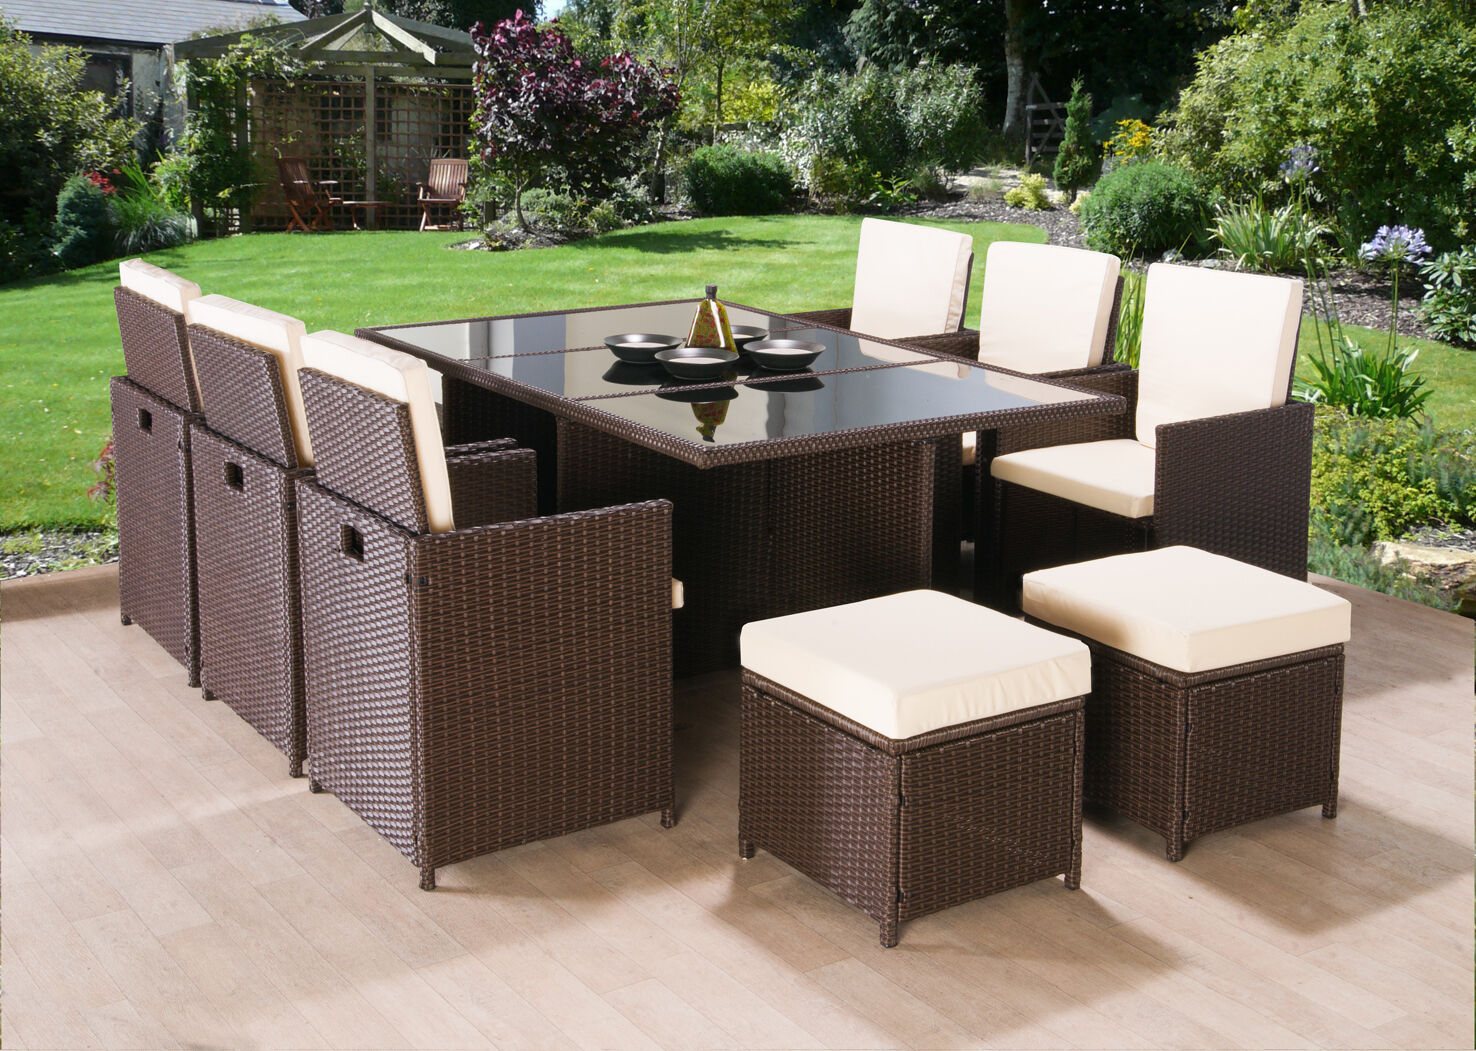 Garden Furniture - RATTAN GARDEN FURNITURE CUBE SET CHAIRS SOFA TABLE OUTDOOR PATIO WICKER